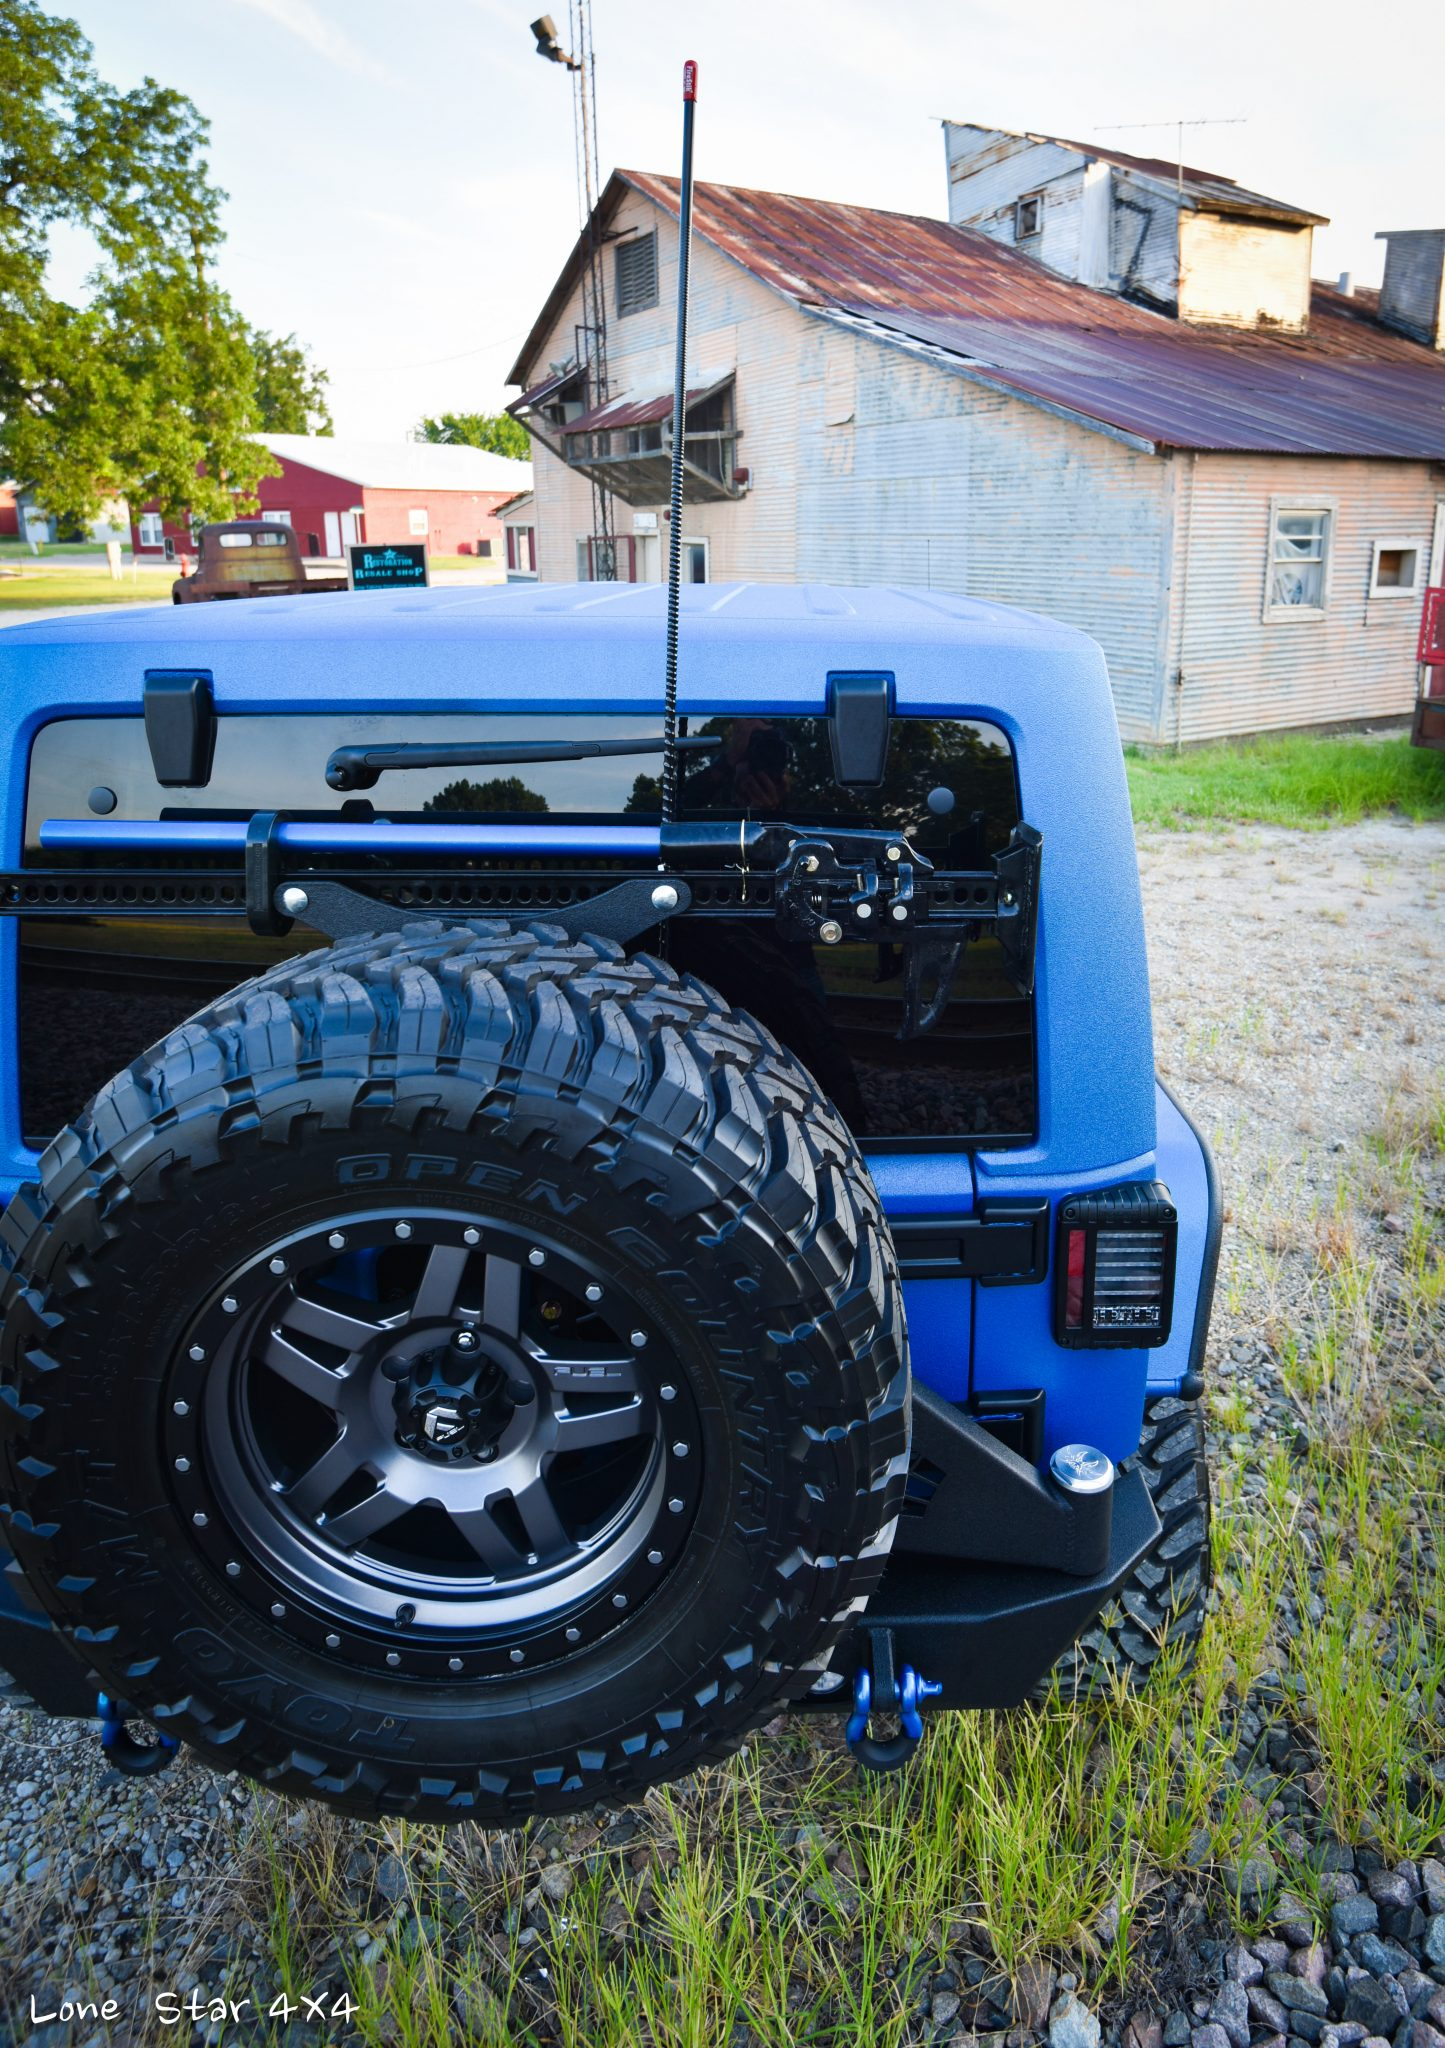 Sprayed Blue Jeep Rubicon Rear Elevated View